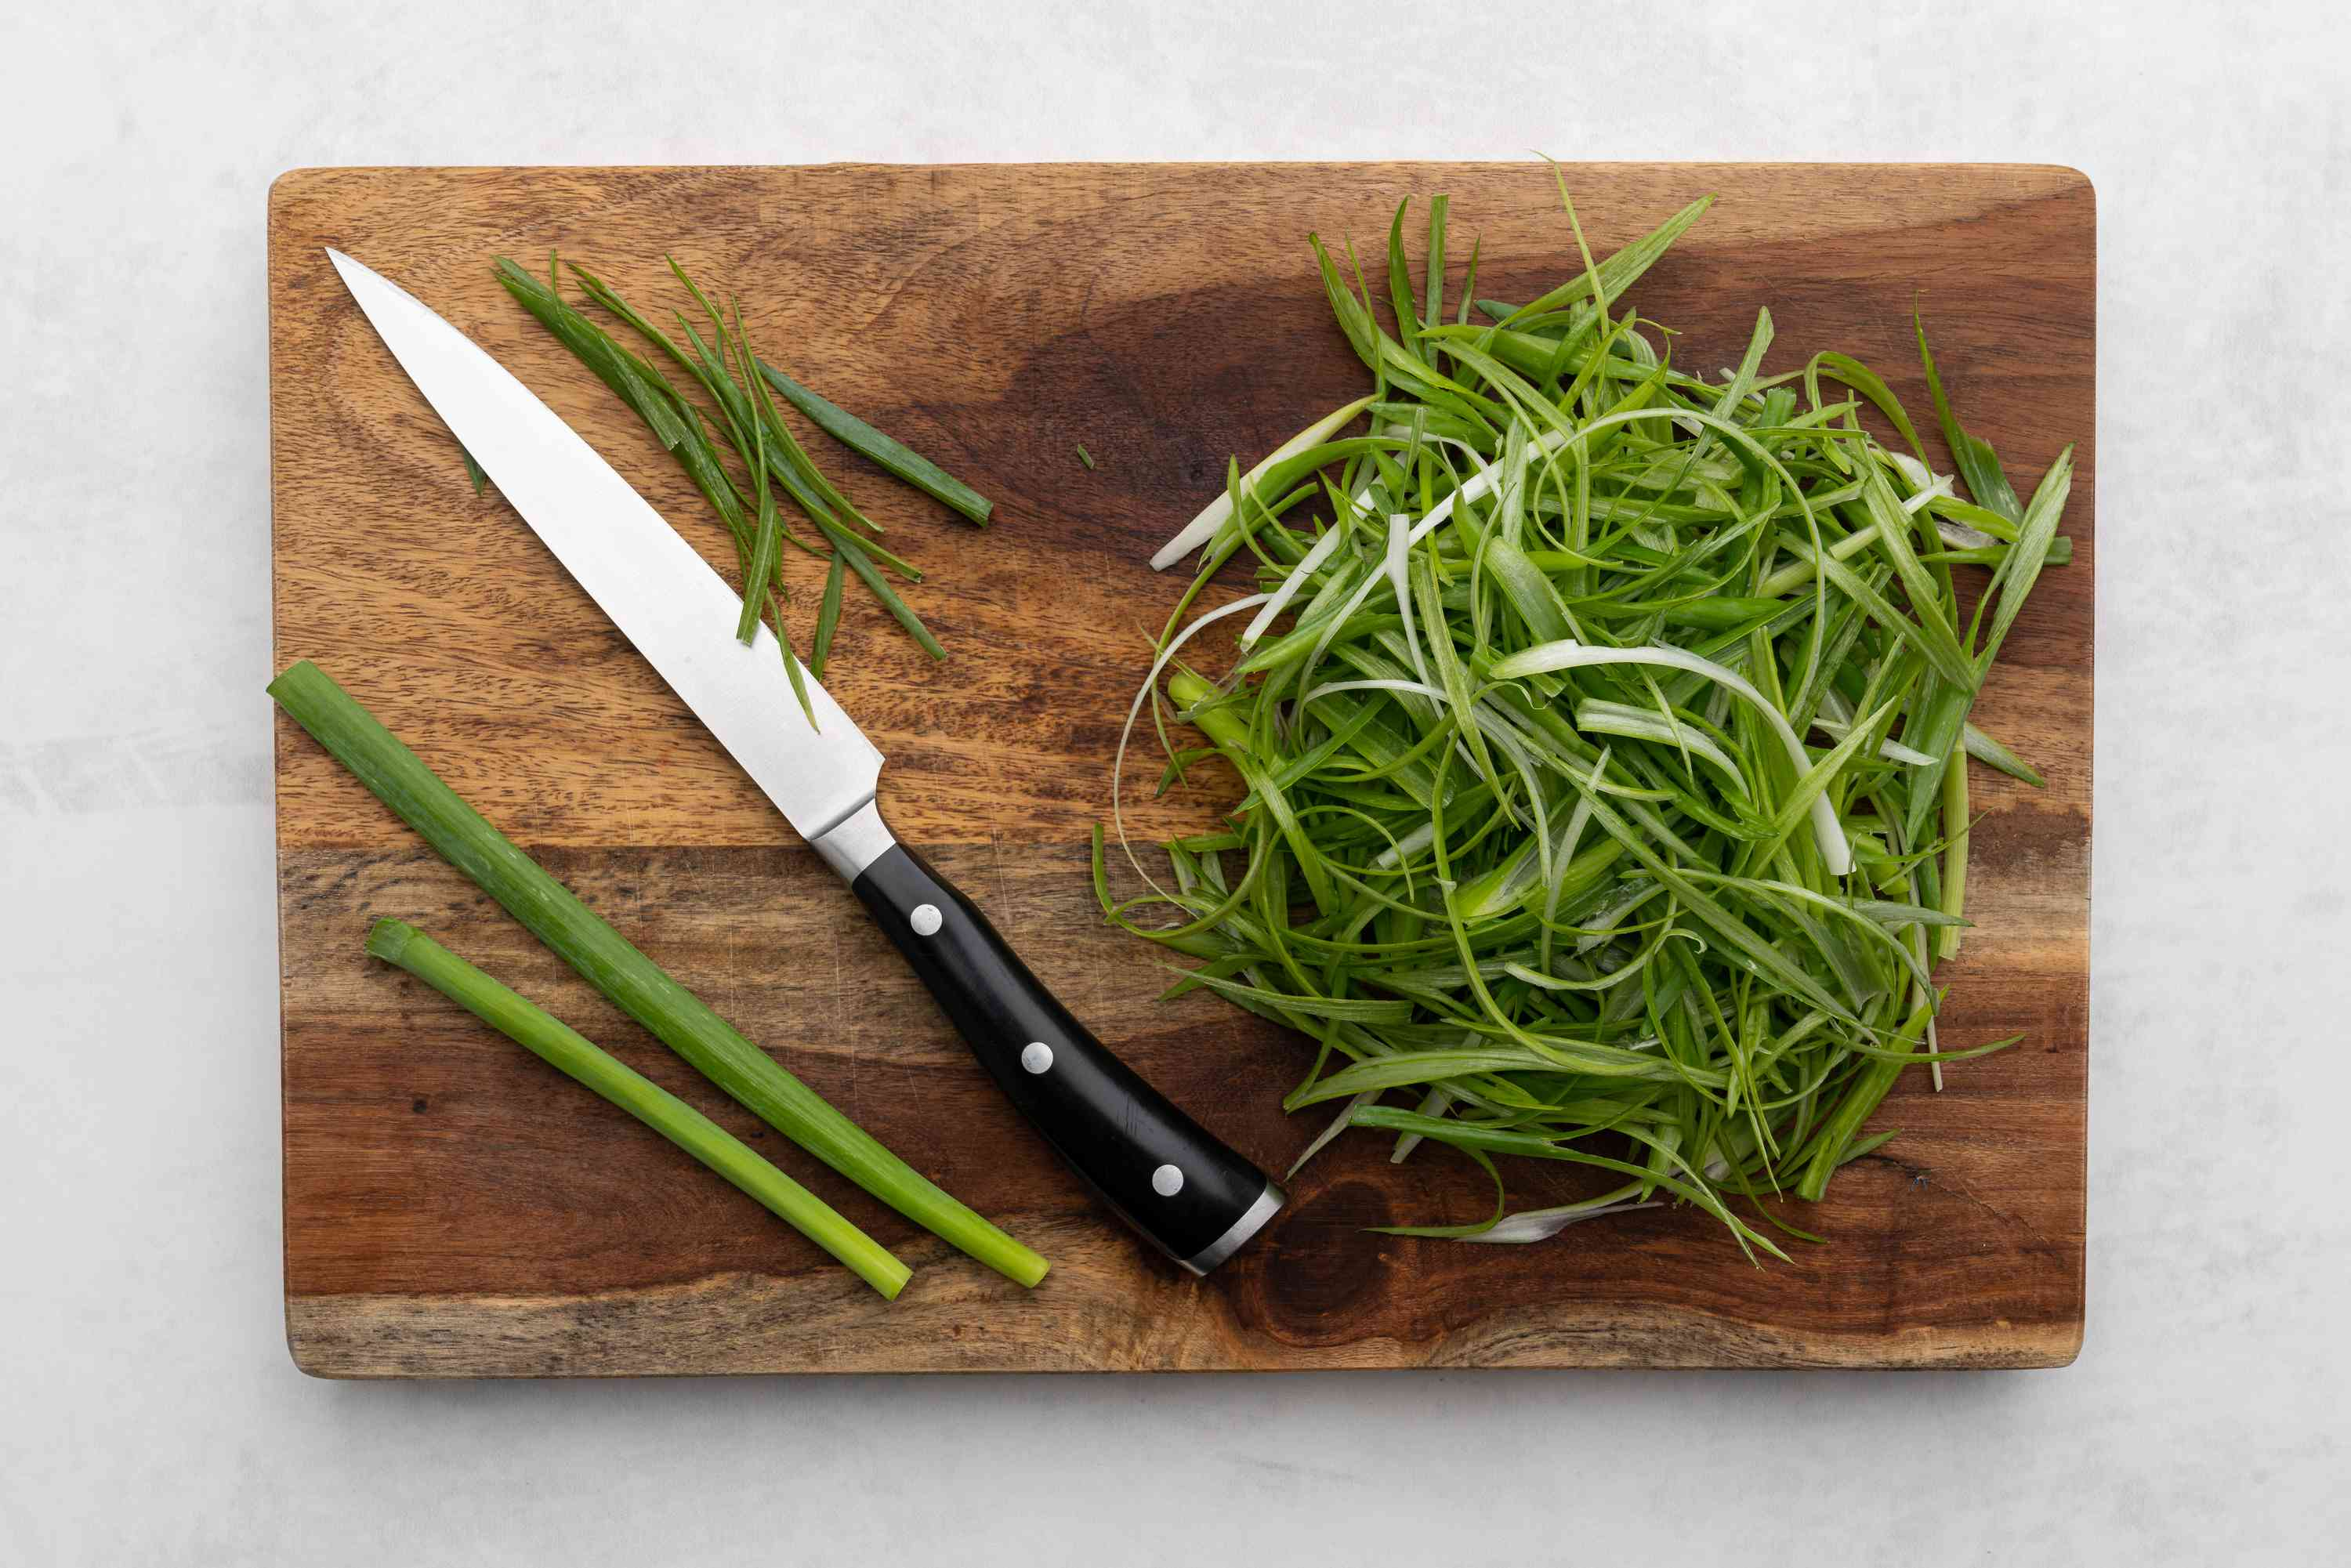 Cut the scallions into very thin strips on a cutting board